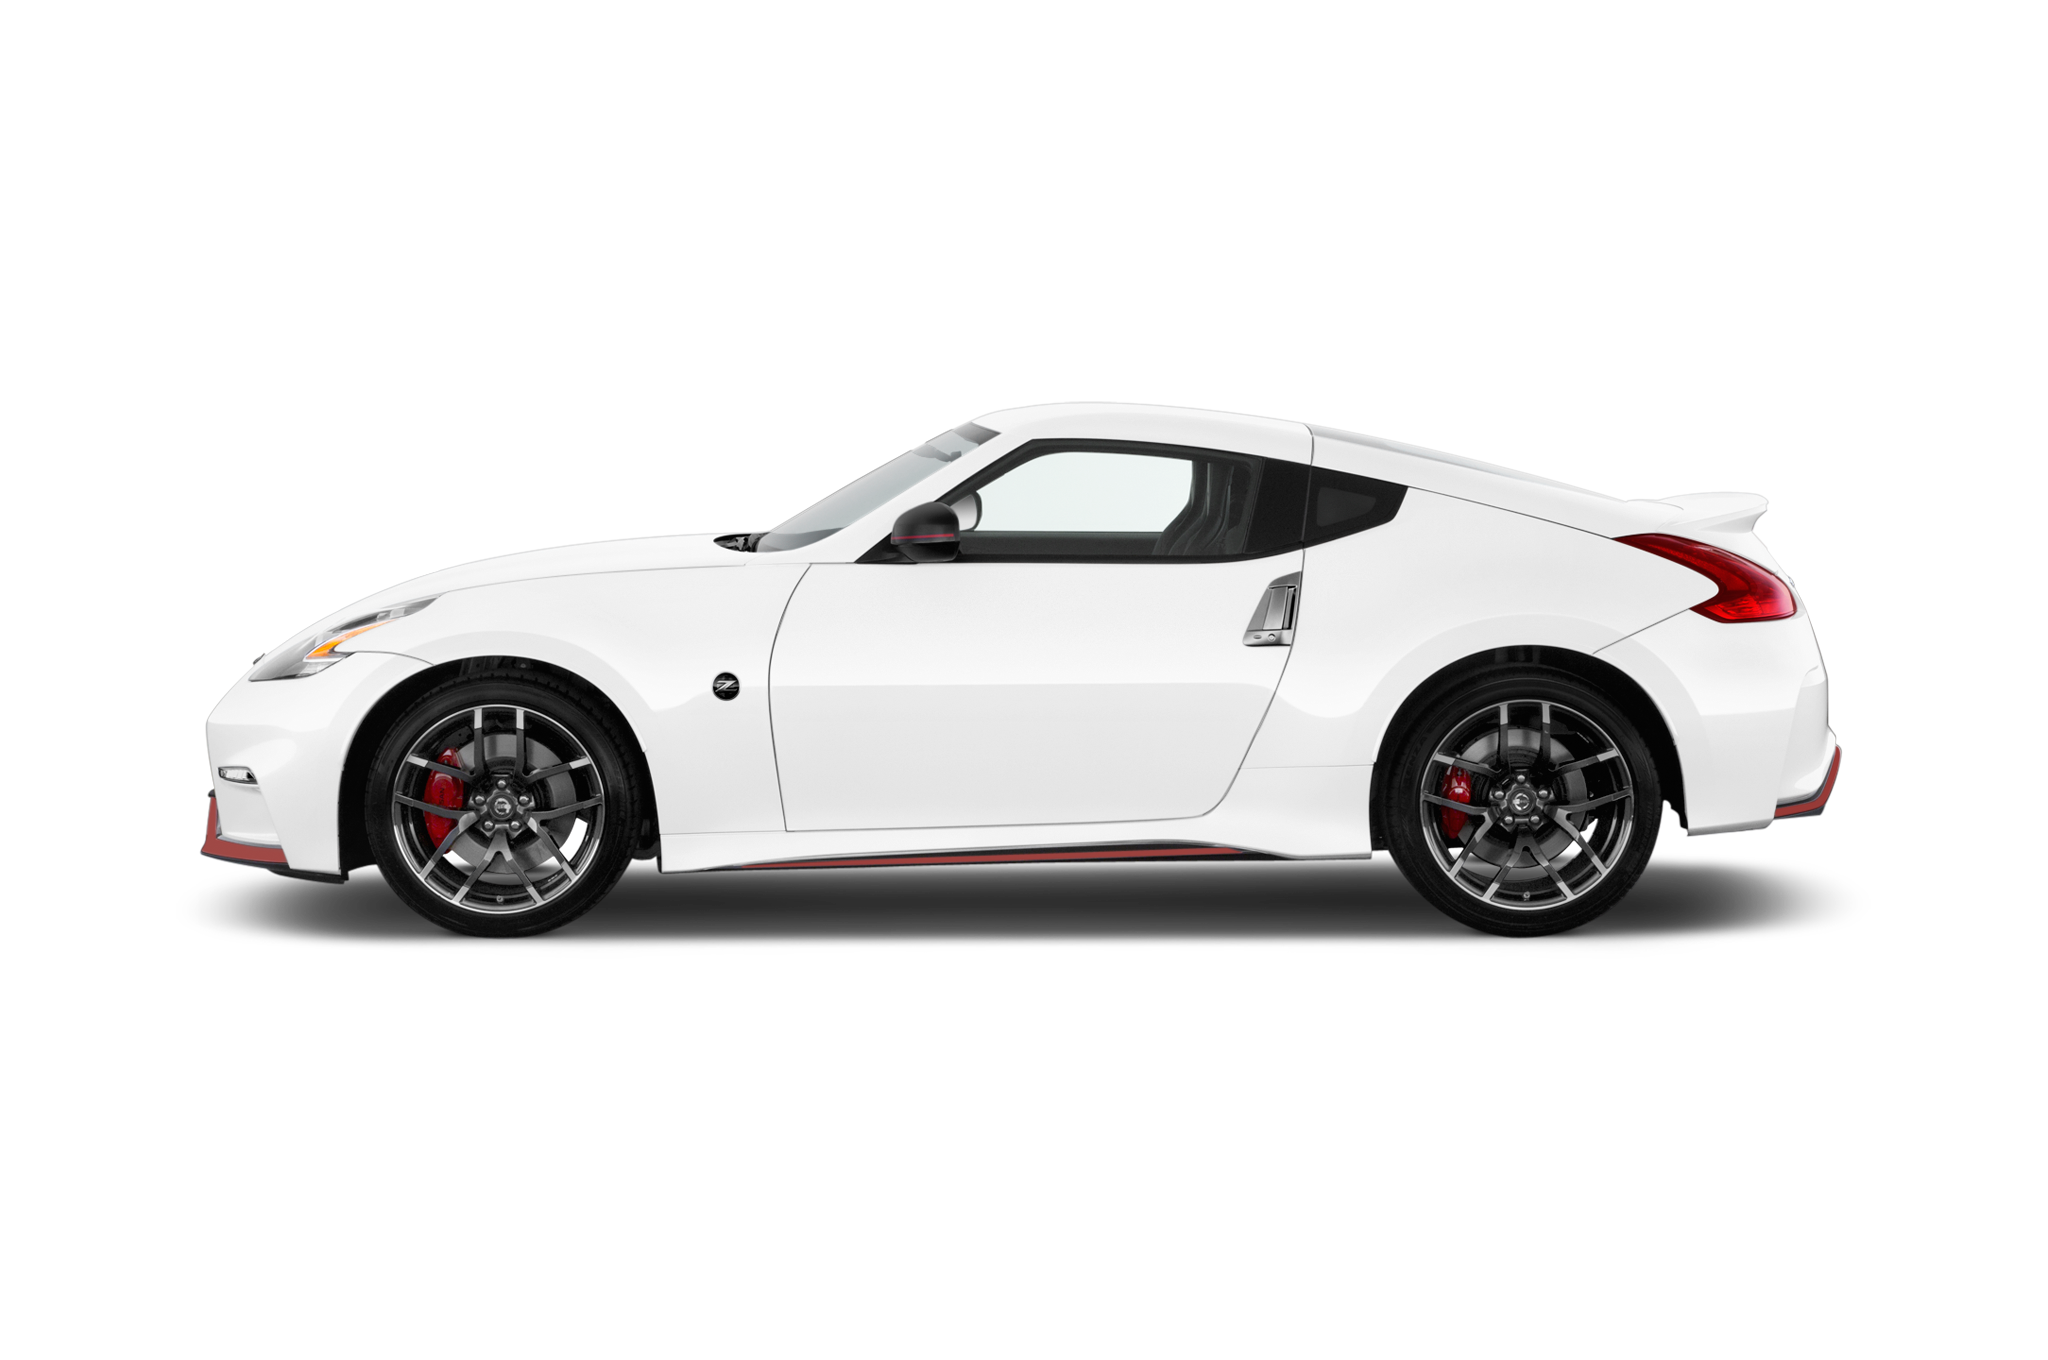 370z Nismo 0 60 Best Car Reviews 2019 2020 By Thepressclubmanchester